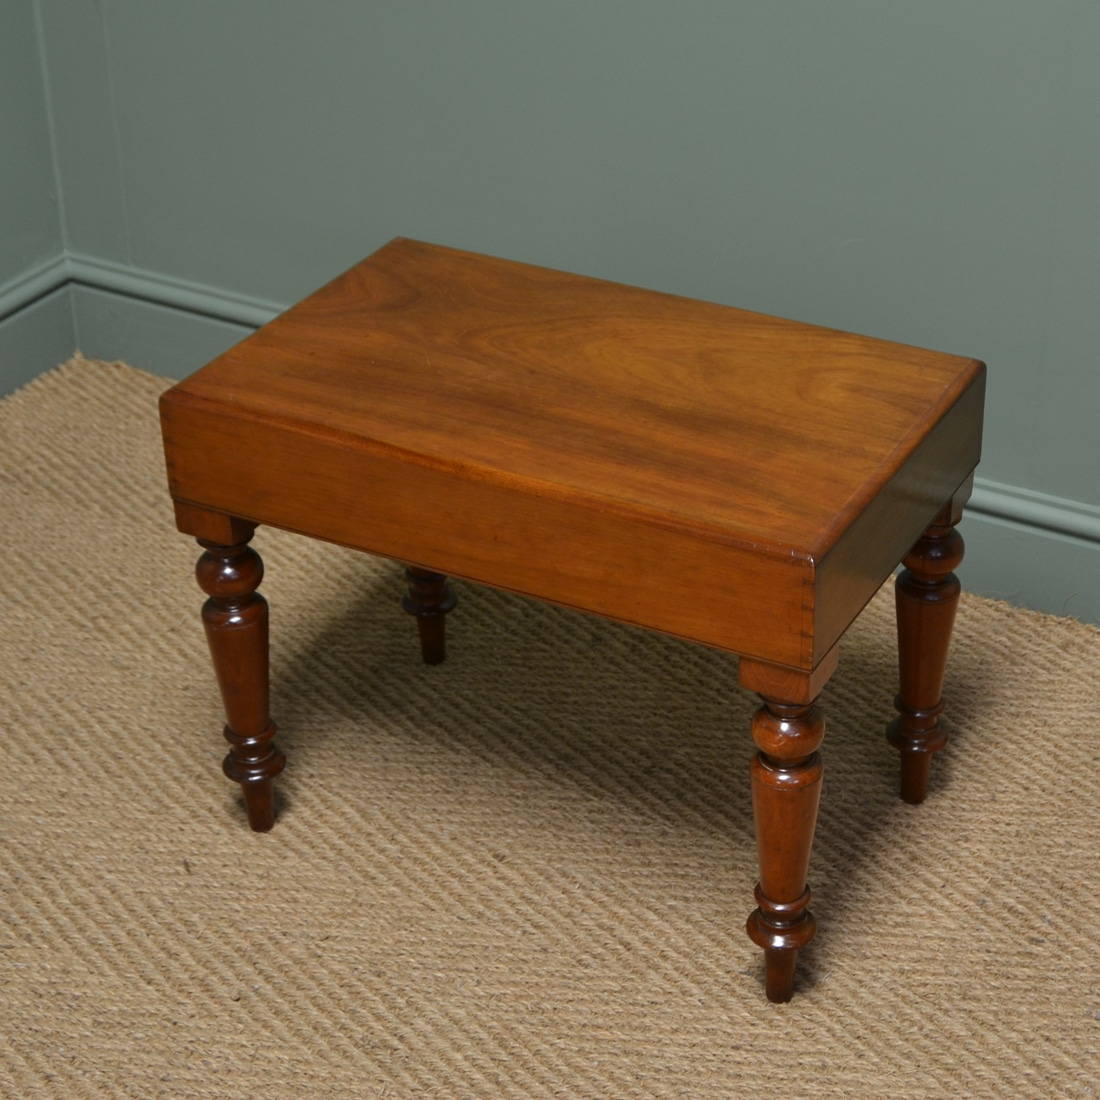 Antique Coffee Table Uk: Quality Victorian Mahogany Antique Side / Coffee Table